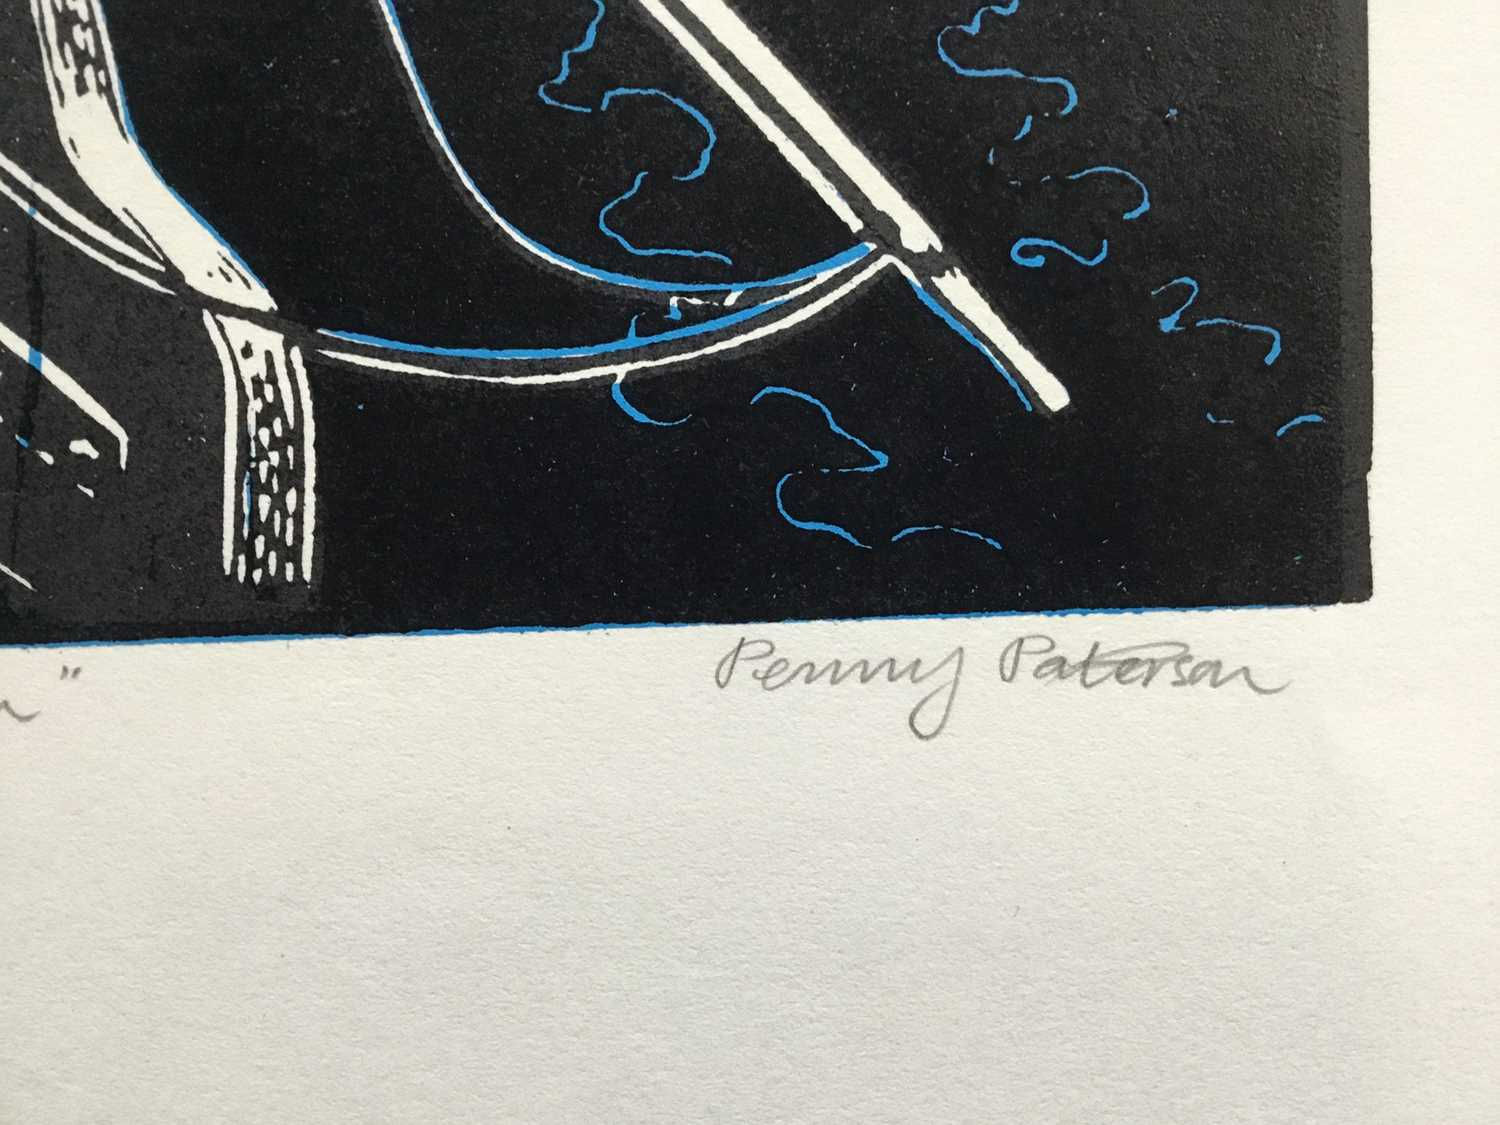 Penny Berry Paterson (1941-2021) colour linocut print, Marriages Raven, signed and numbered 30/30, 4 - Image 2 of 3